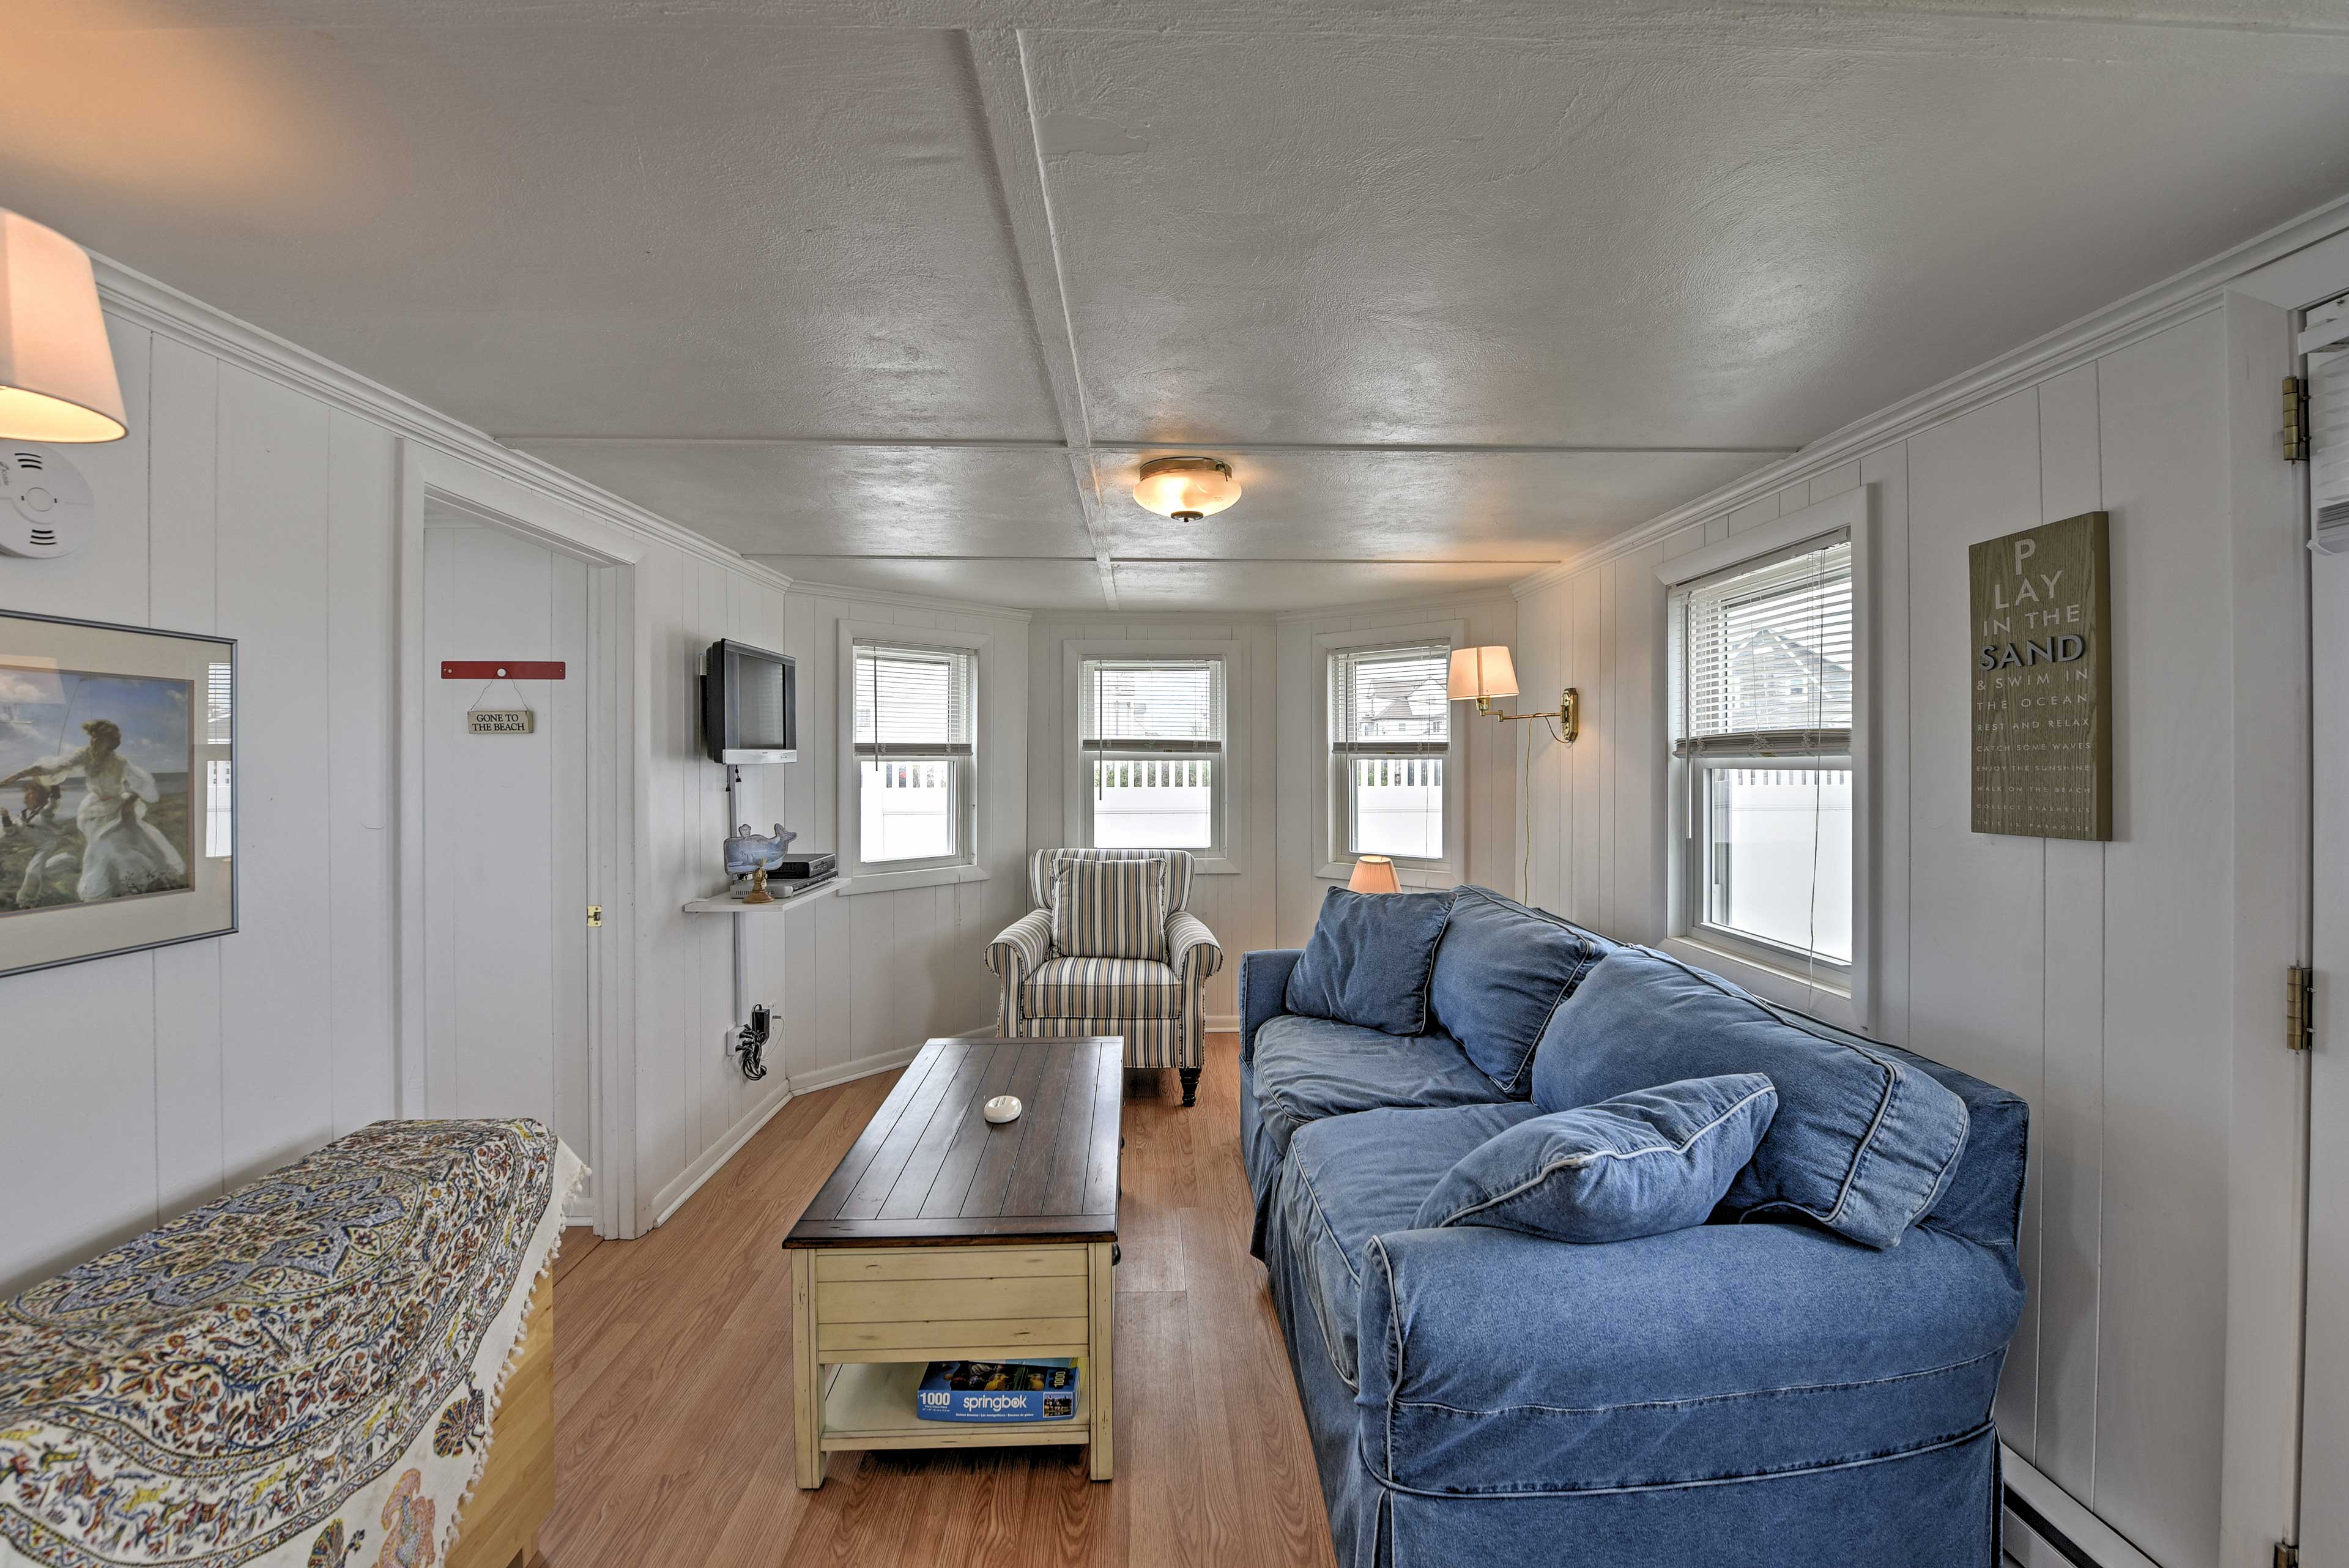 The living room is furnished with comfortable, plush furniture.